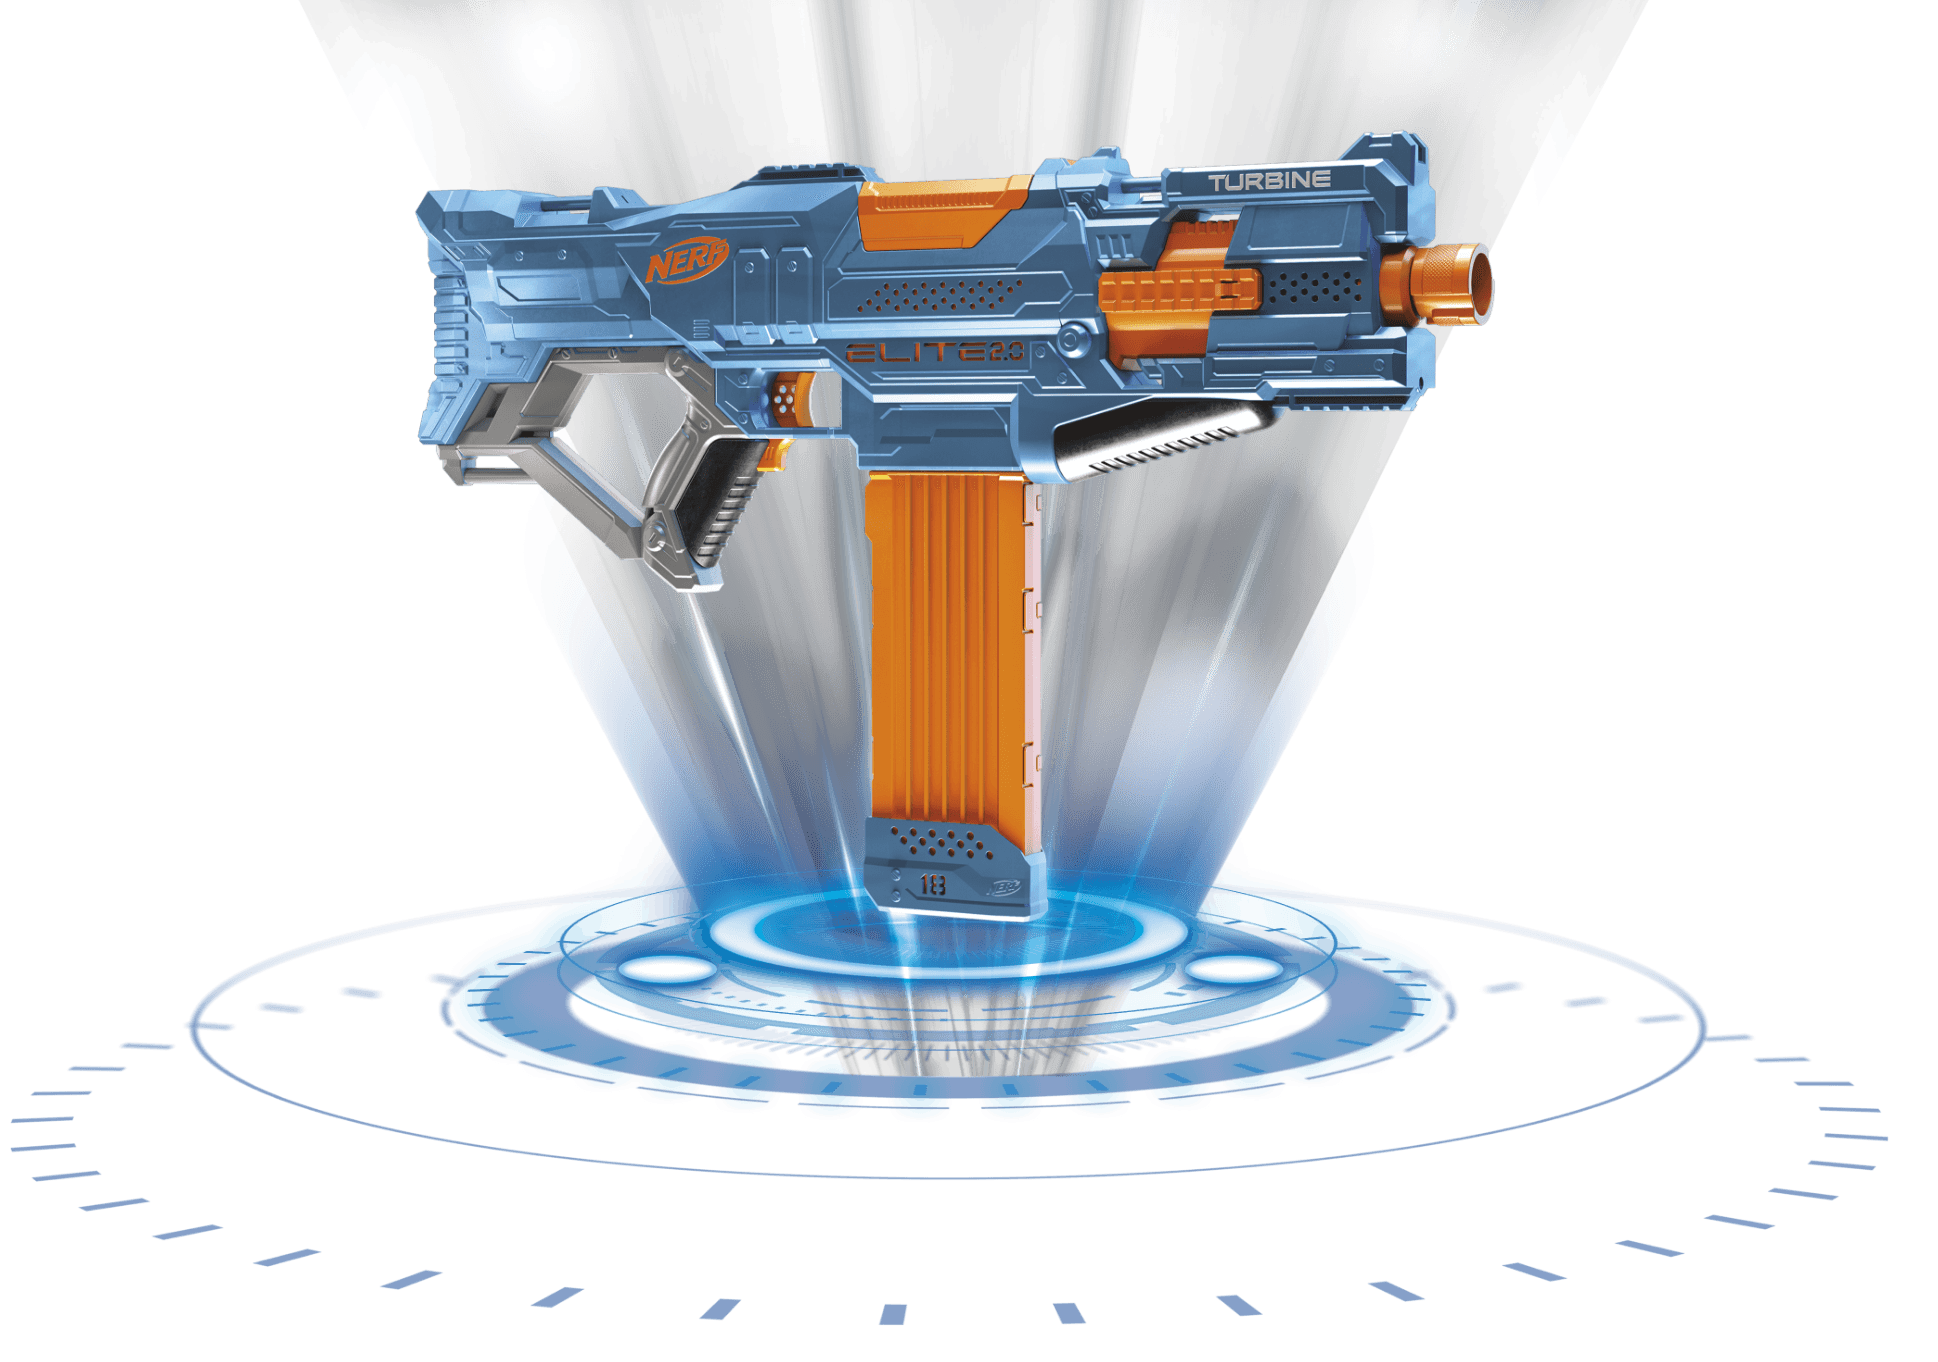 Nerf Elite 2.0 - TURBINE CS-18 Blaster